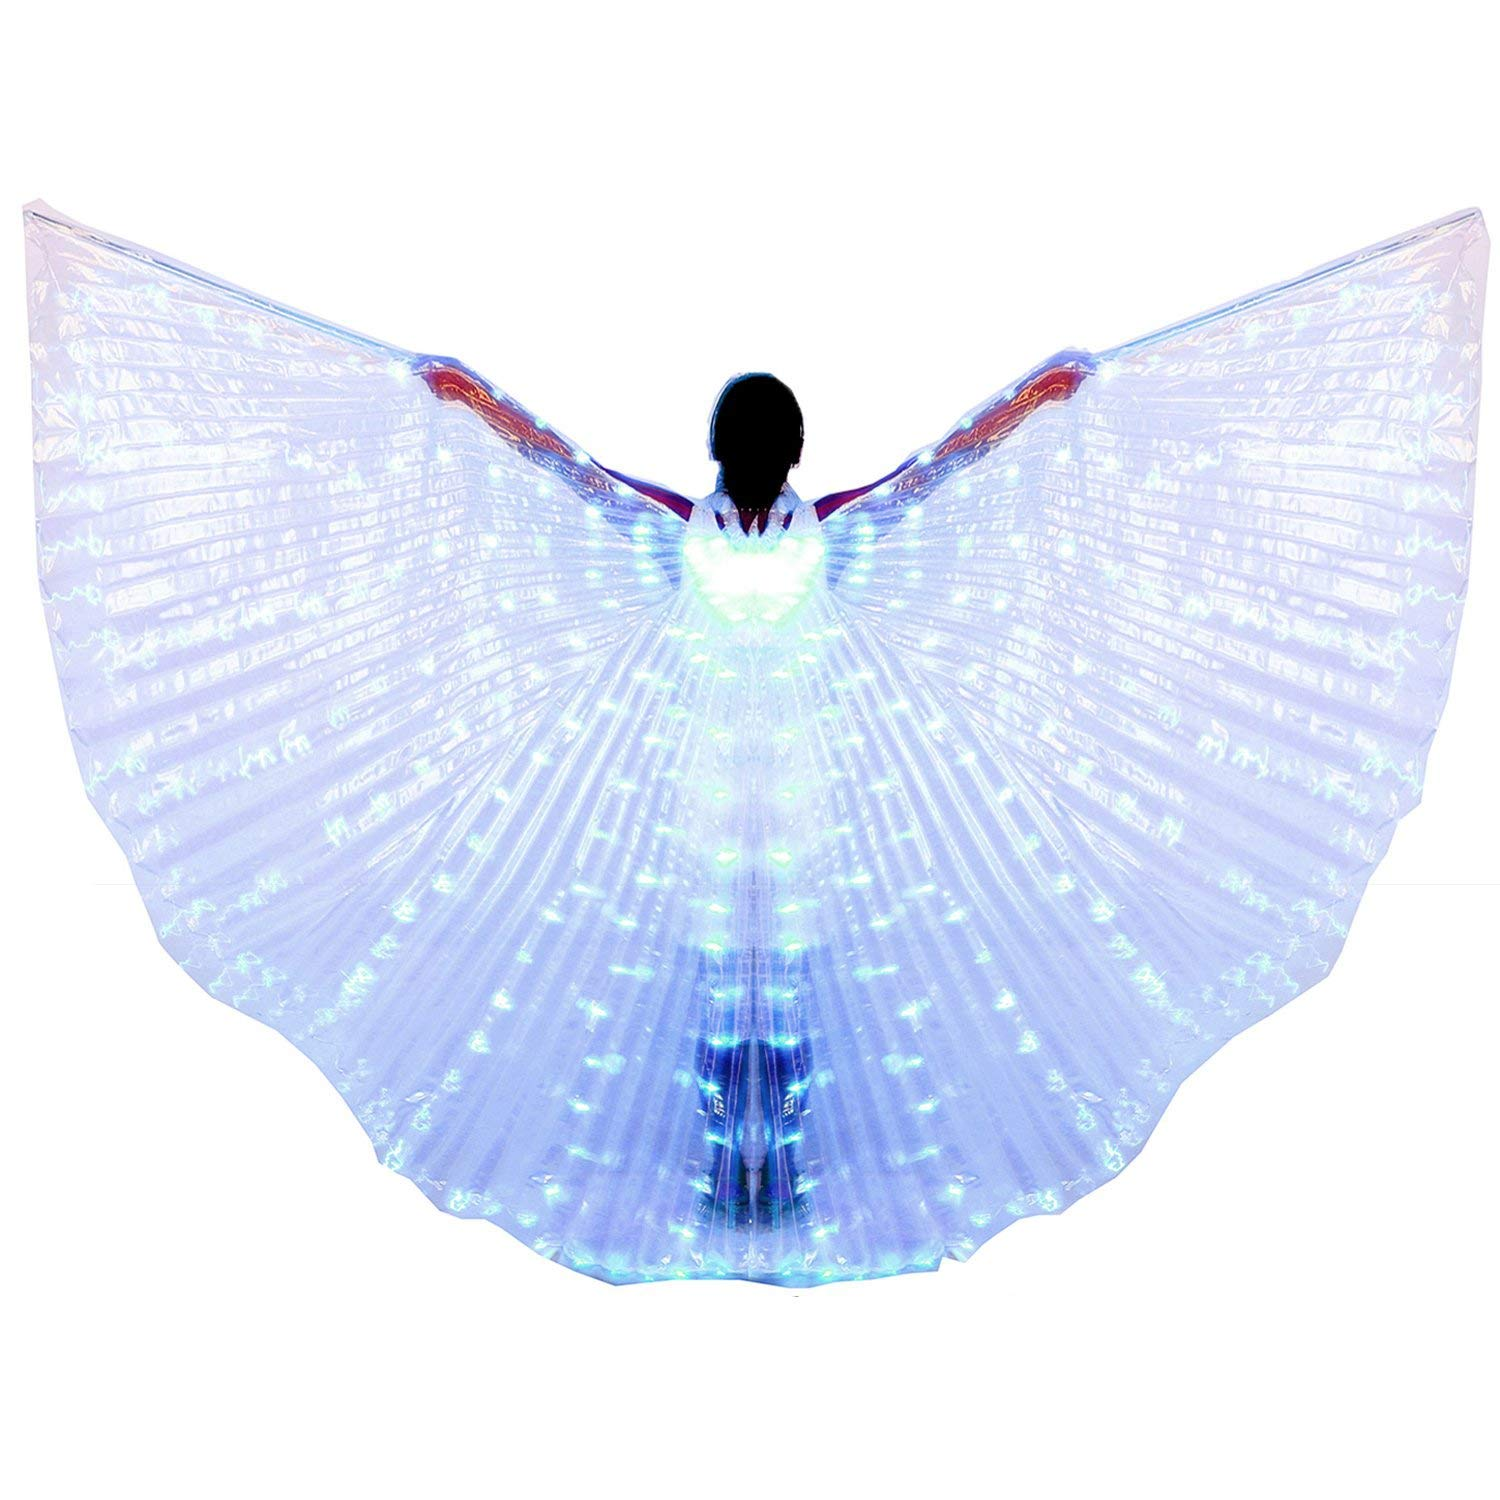 xiaoxiaoland εїз Belly Dance Wing with Rods-360 Degree Angel Wings with Portable Telescopic Sticks for Adults and Child,Blue by xiaoxiaoland